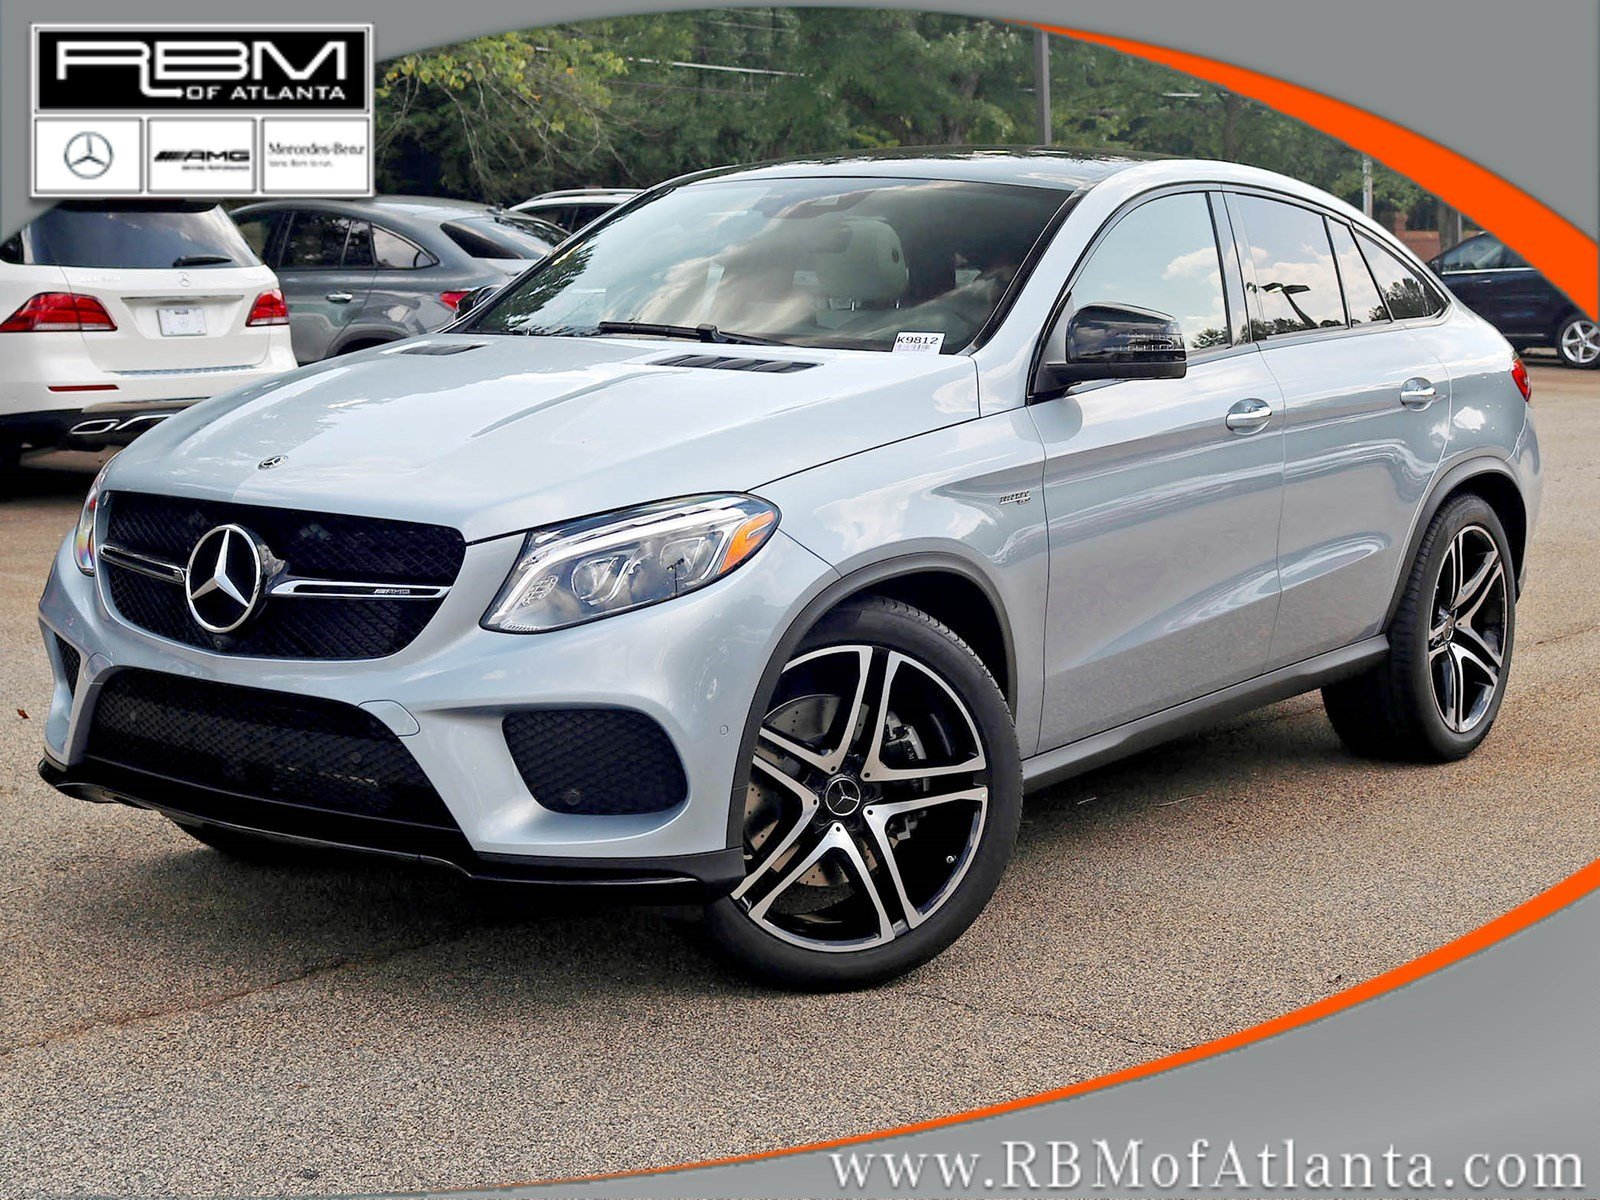 new 2018 mercedes benz gle amg gle 43 coupe coupe in atlanta k9812 rbm of atlanta. Black Bedroom Furniture Sets. Home Design Ideas